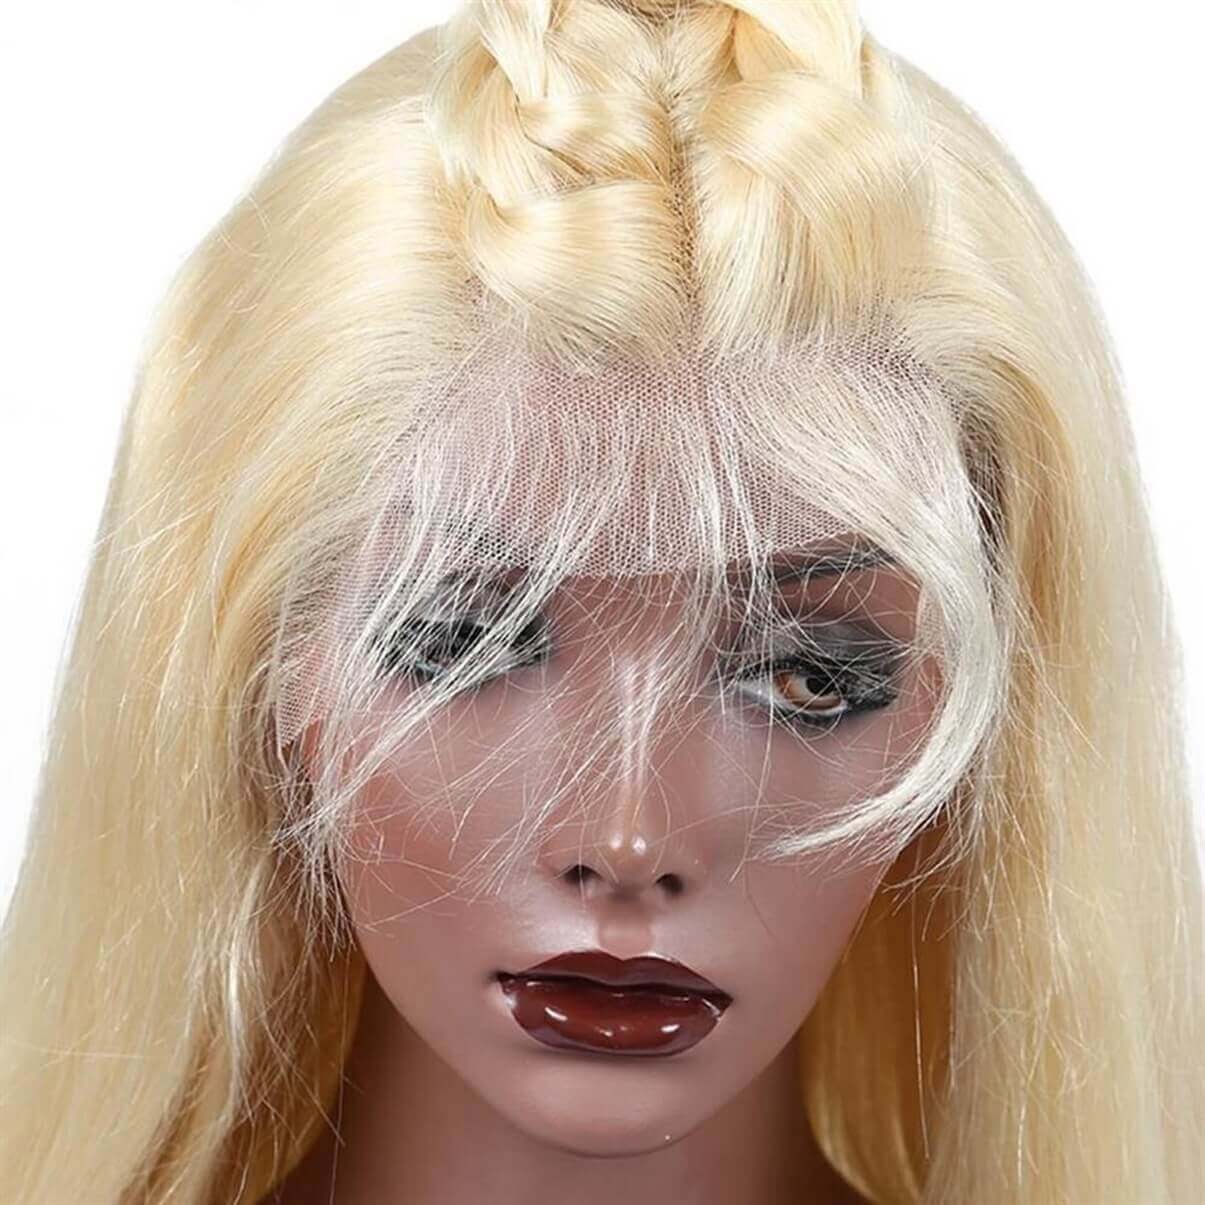 Lakihair 613 Blonde Color Virgin Brazilian Straight Lace Wigs Pre Plucked Glueless Lace Front Human Hair Wigs